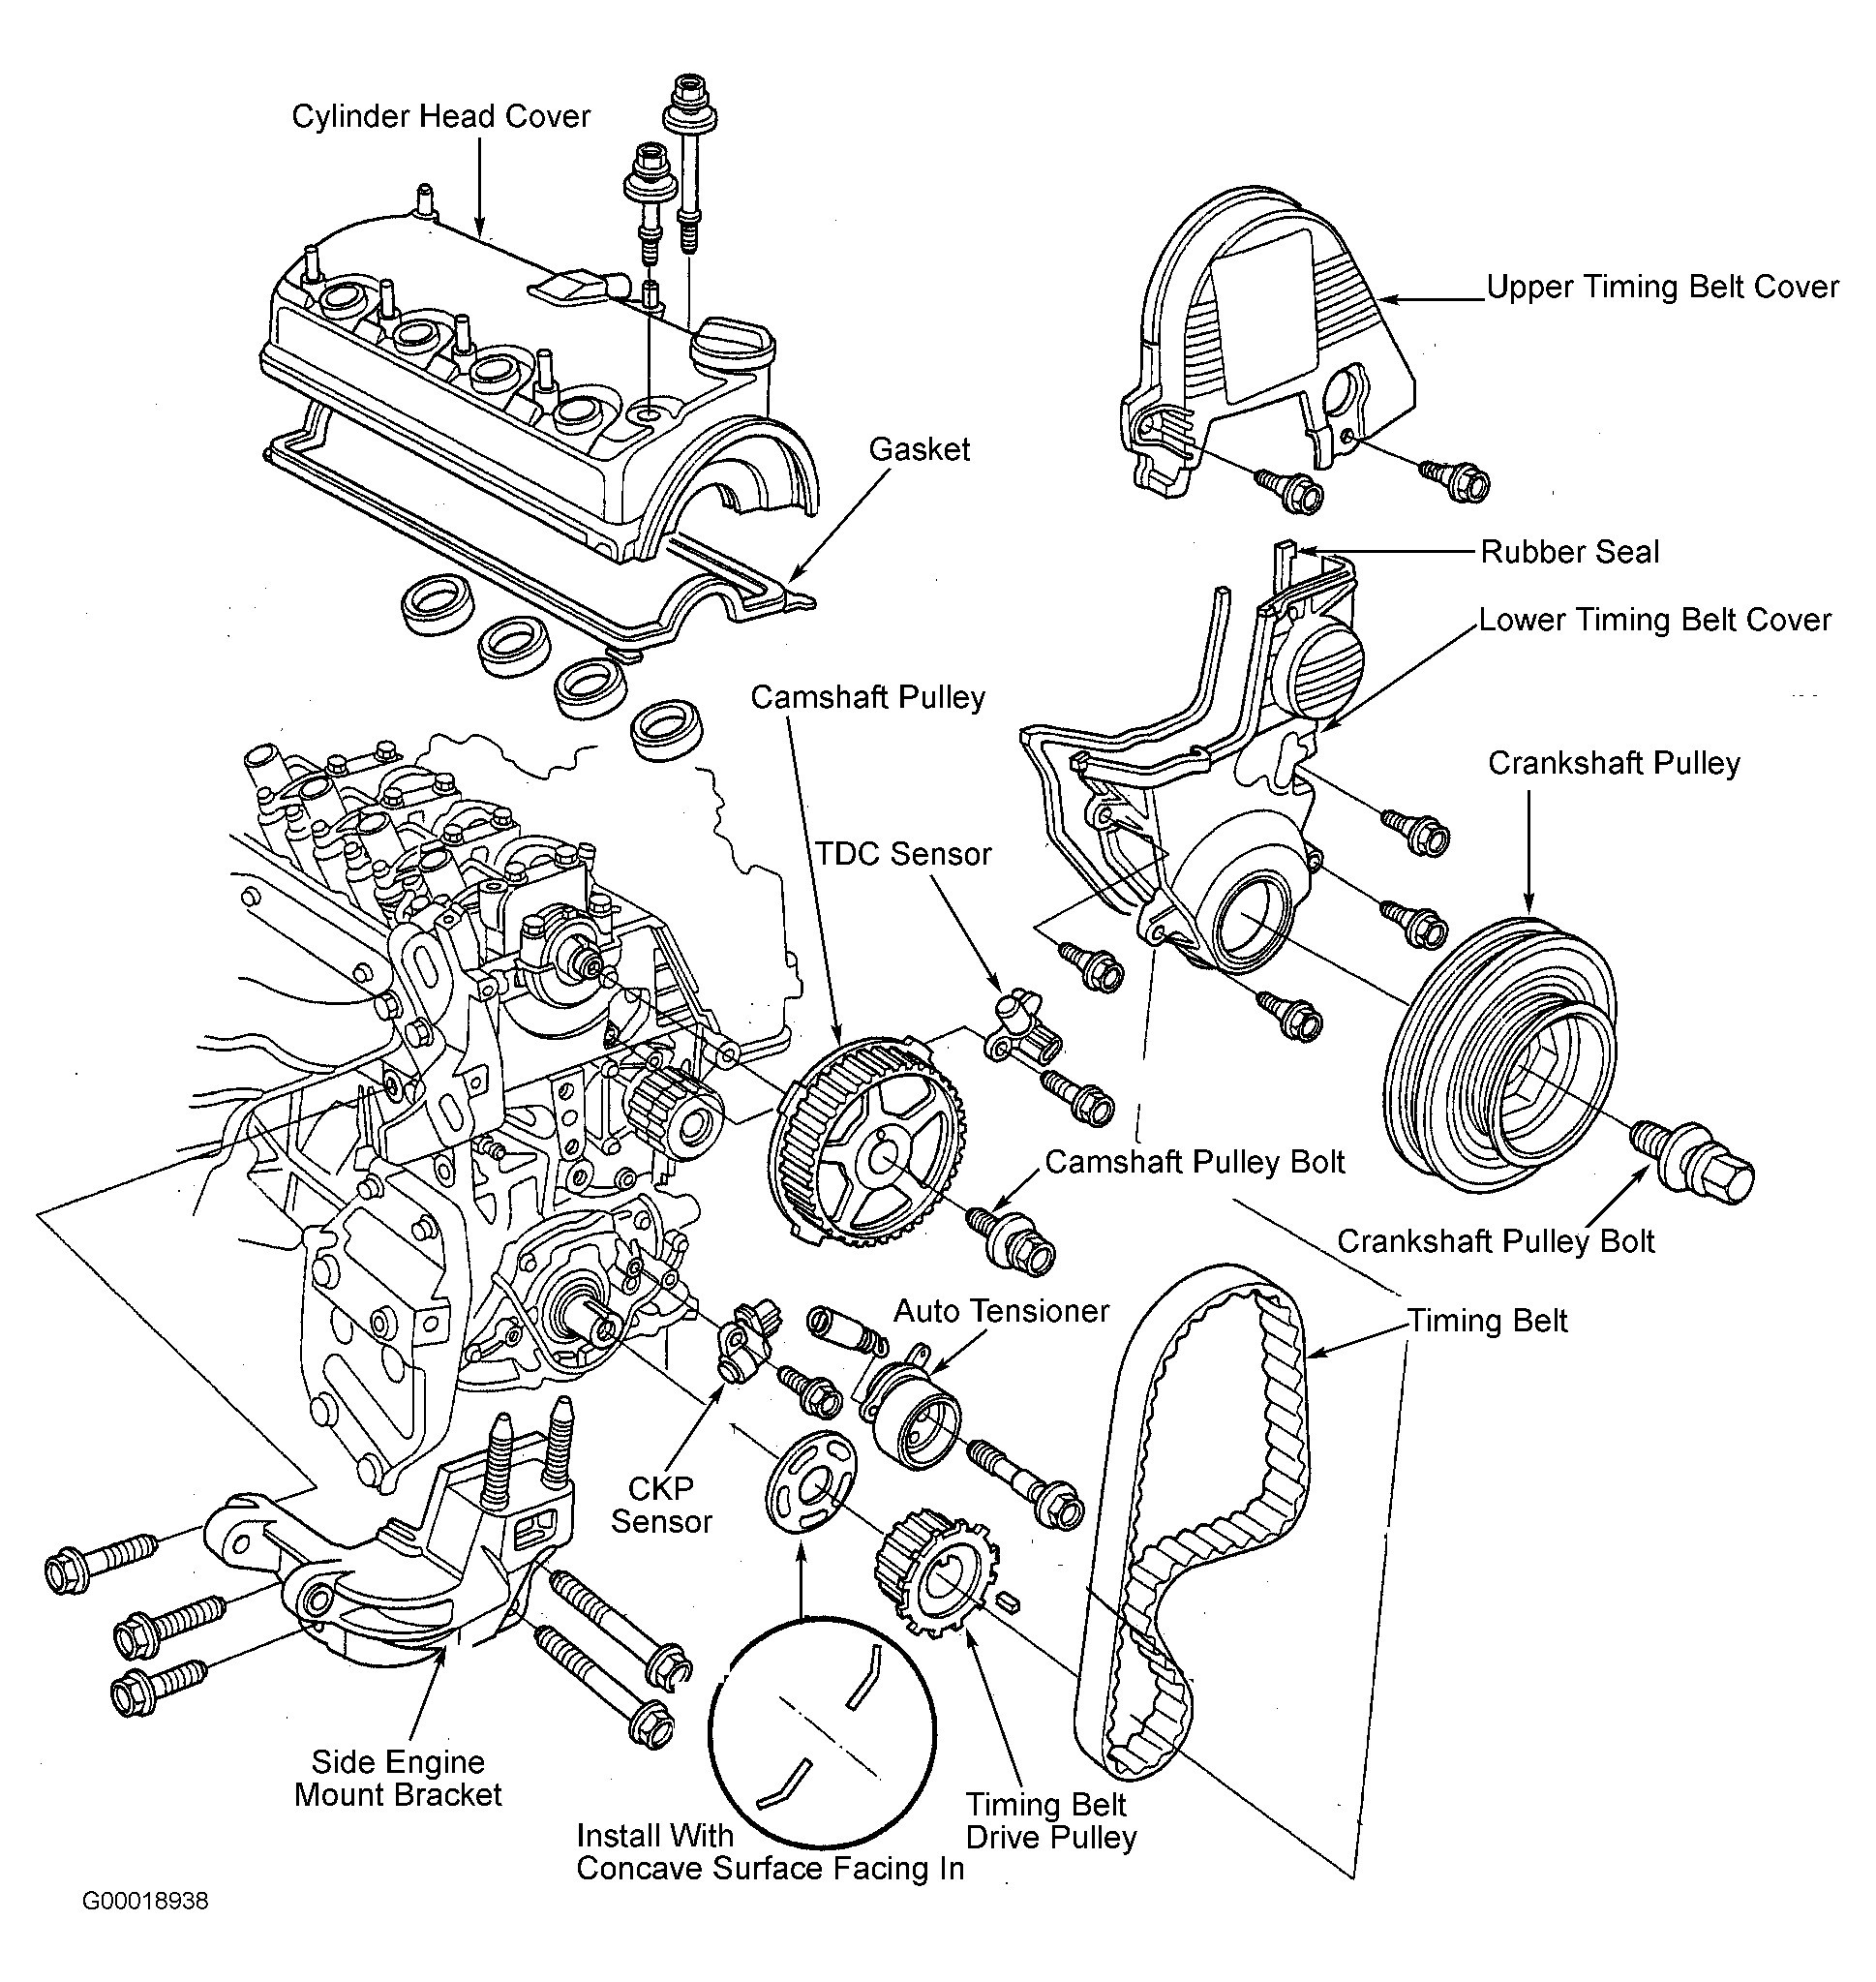 Honda Gcv160 Engine Parts Diagram Honda Gc160 Parts Diagram – My ...